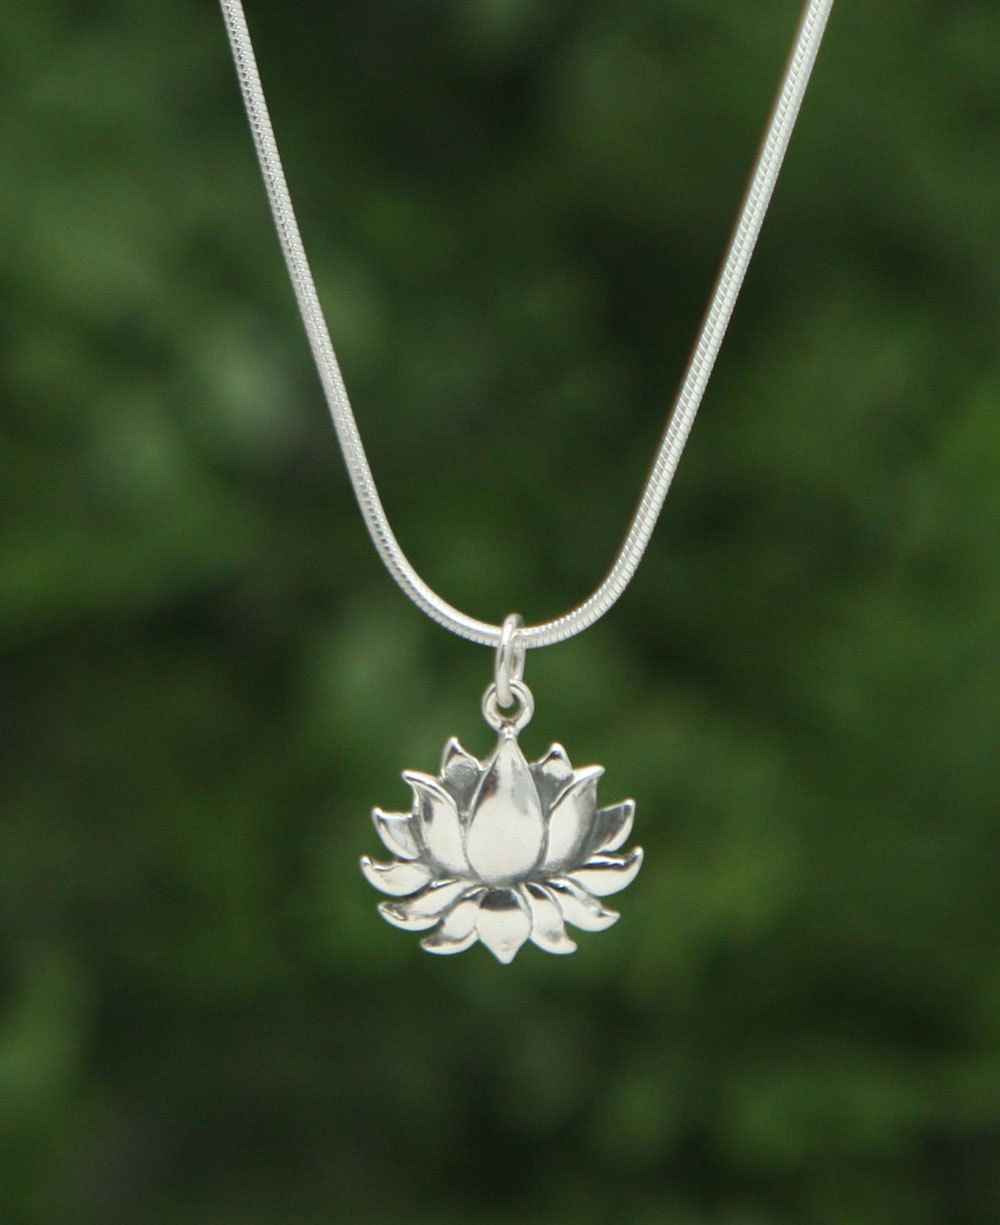 Detailed Sterling Silver Charm Pendant Shows The Lotus Flower In